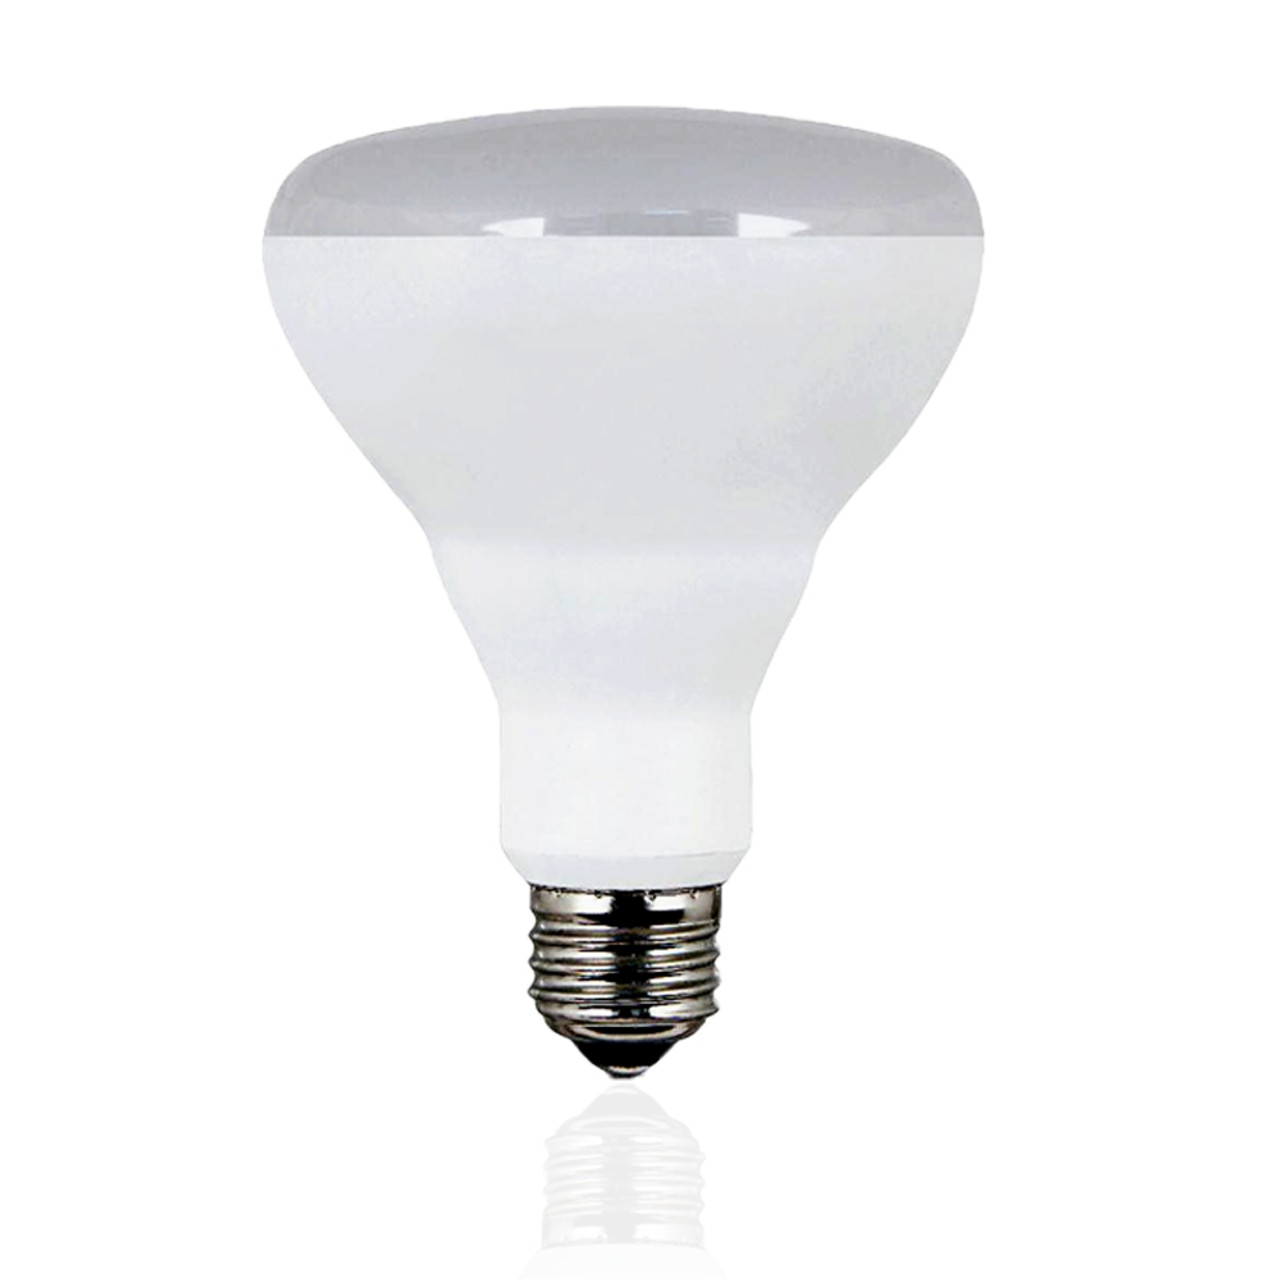 LED BR30 12 Watt Dimmable Warm White